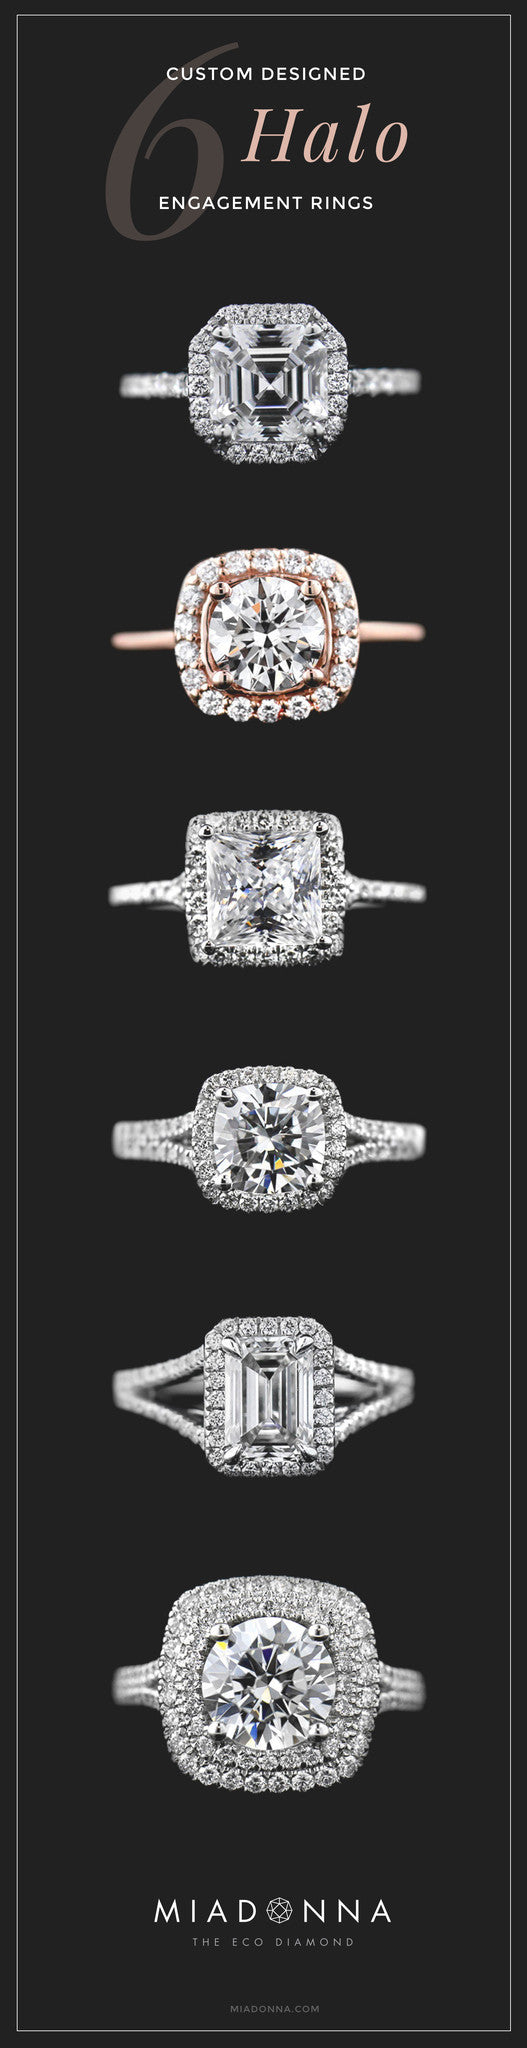 Six custom designed halo engagement rings